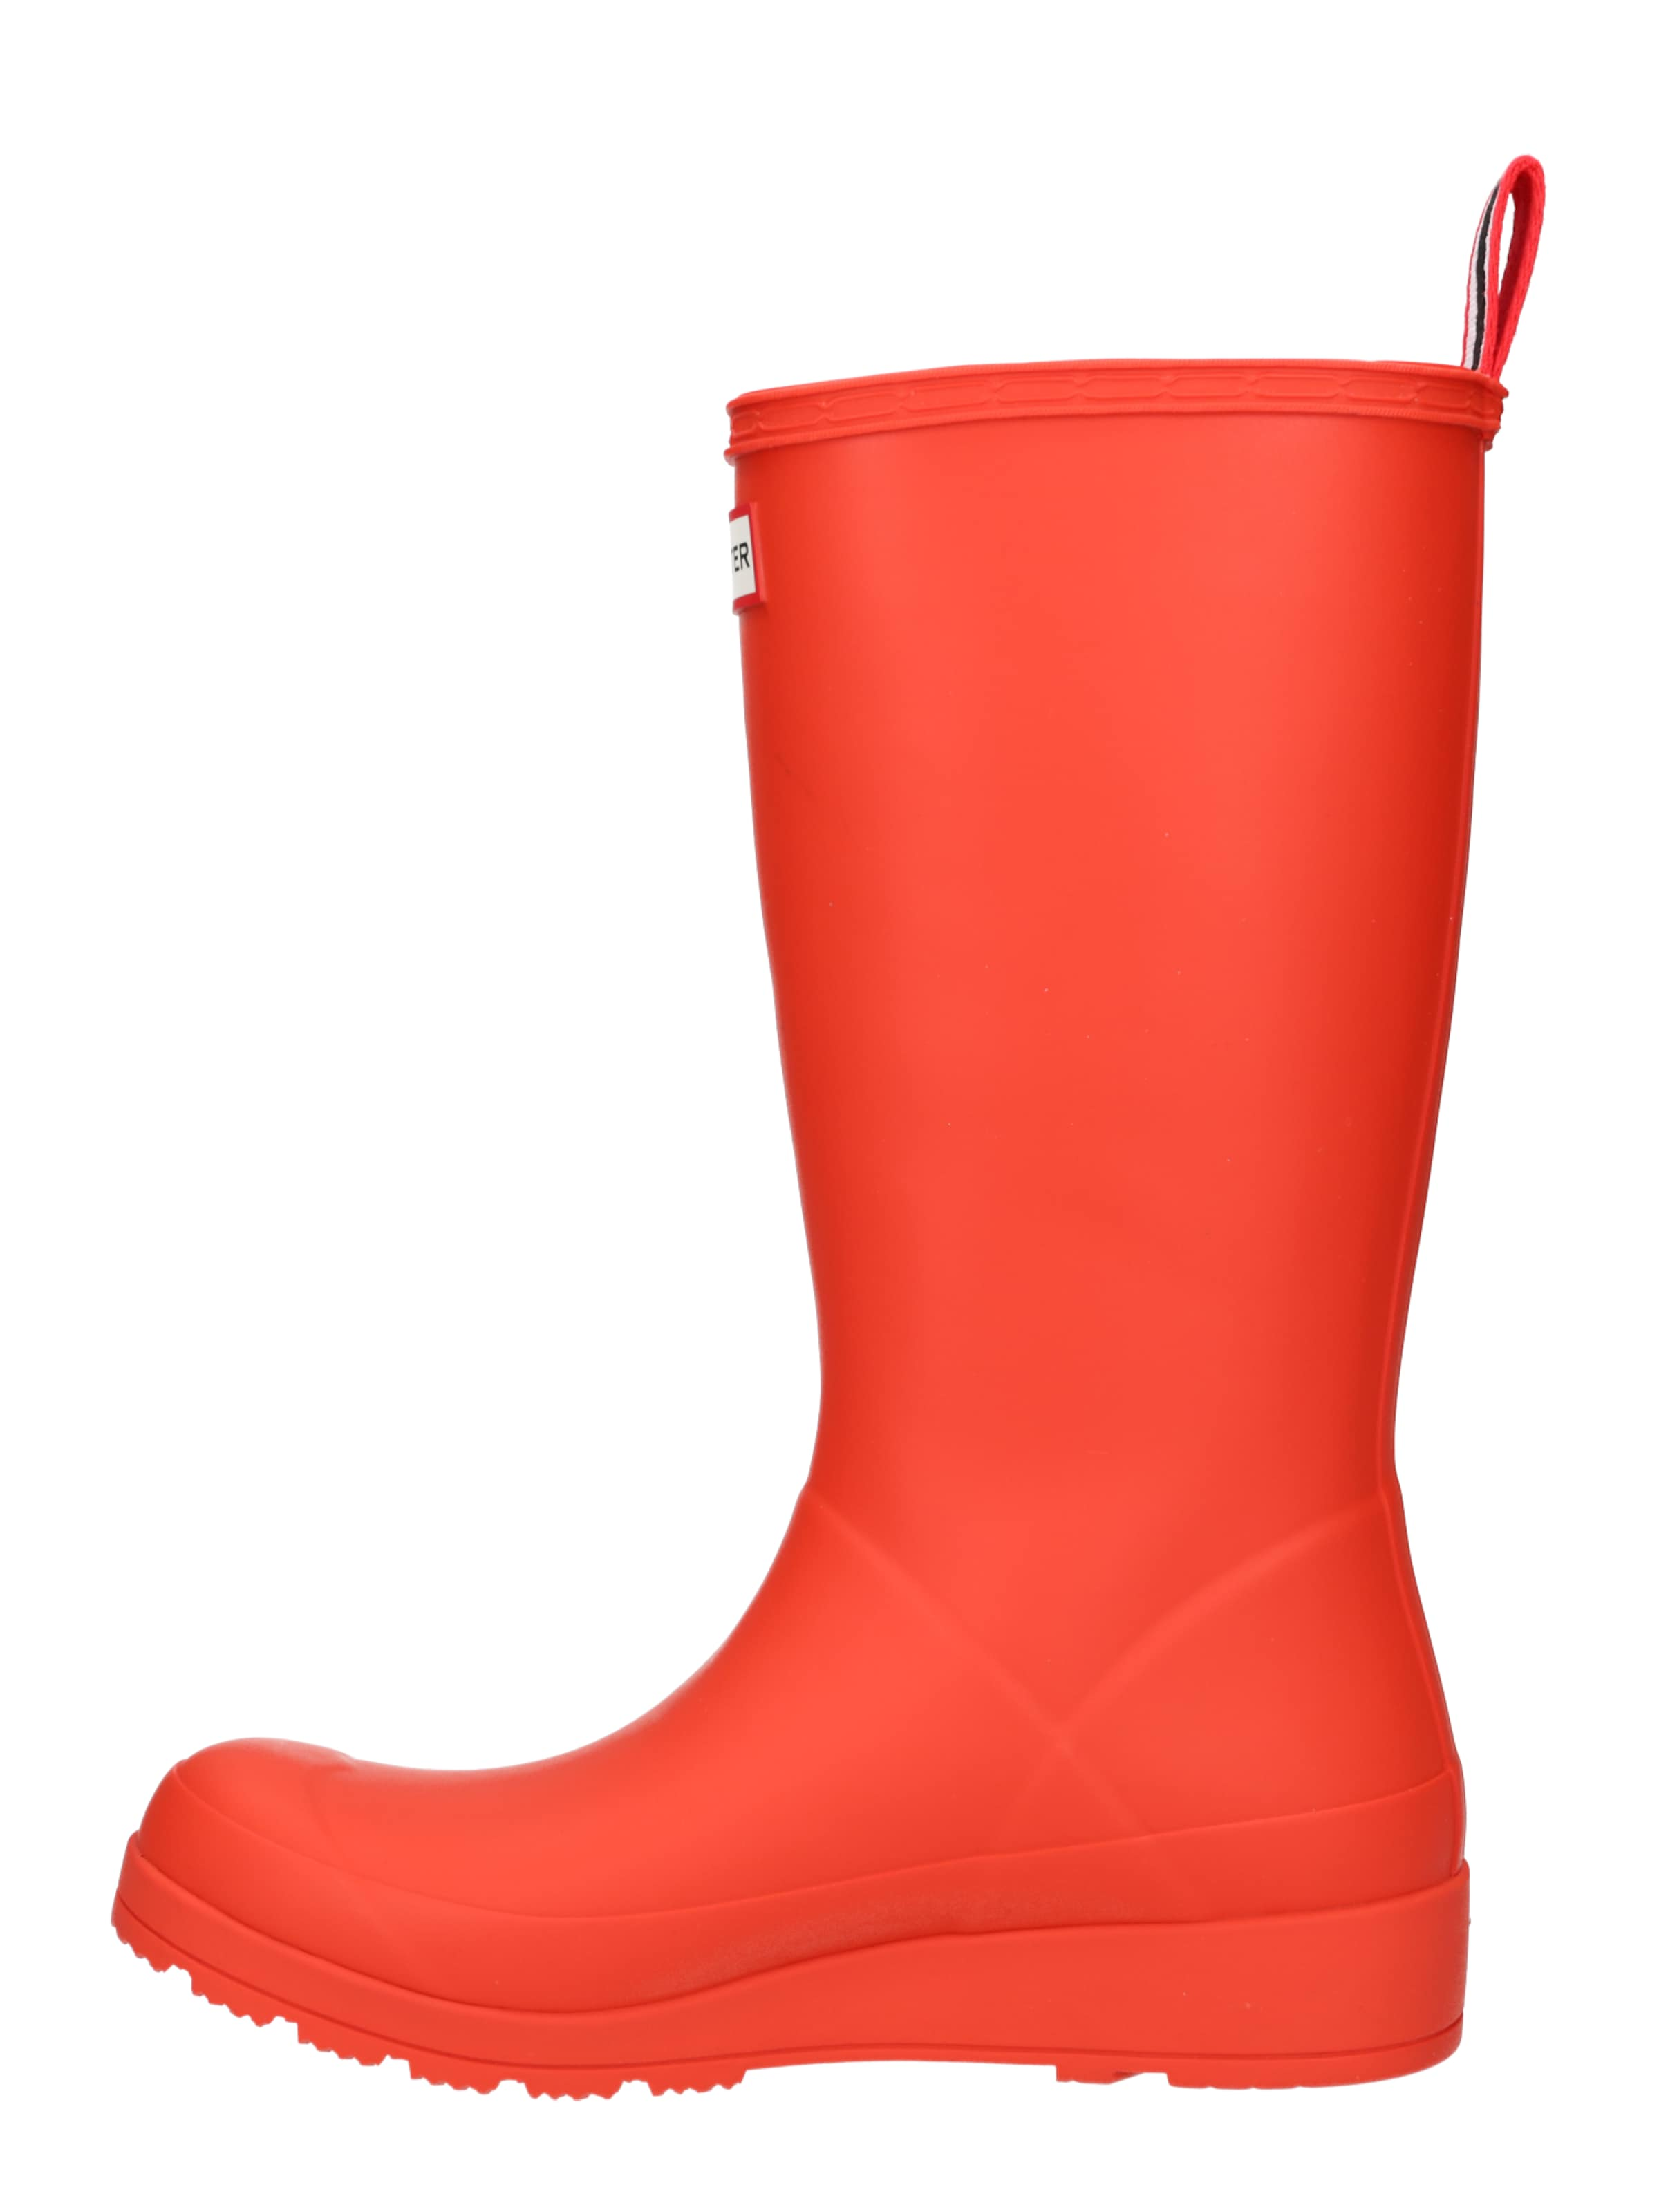 Rouge Hunter 'original Bottes En Caoutchouc Boot' Play Orangé jGqSUMVpLz